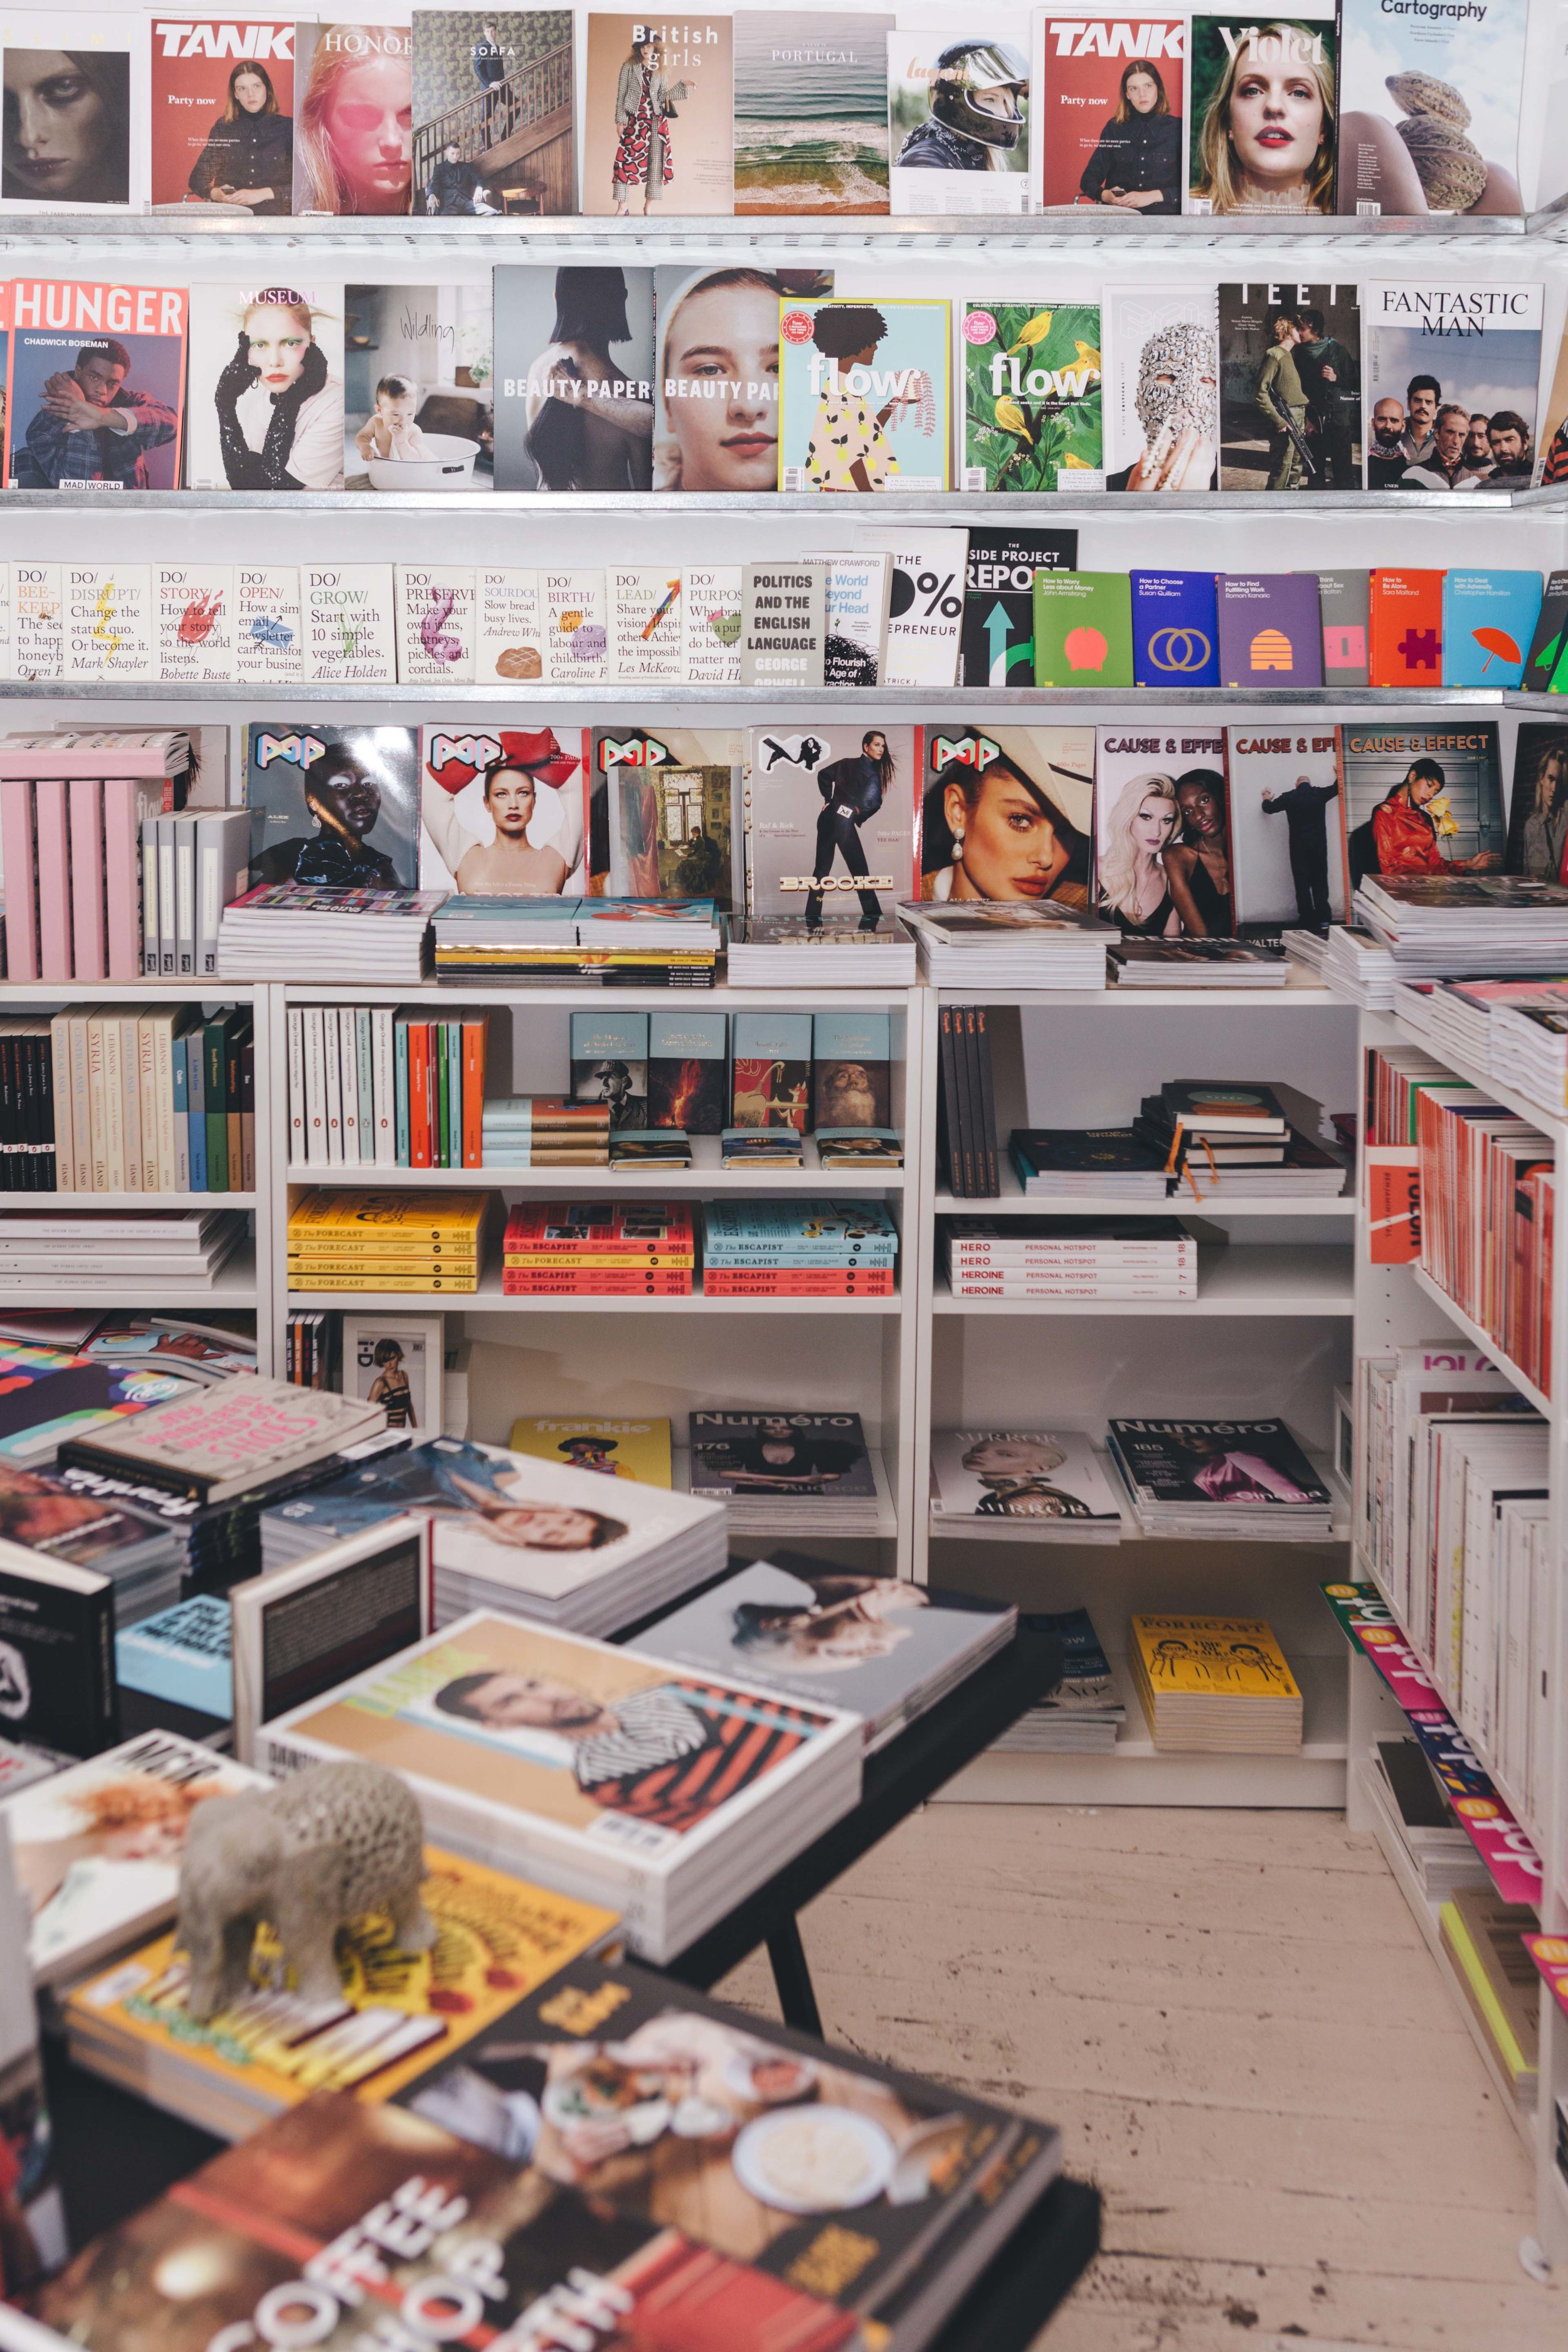 image of a book shop with shelves of magazines on the walls at the back and tables filled with books to the front of the frame